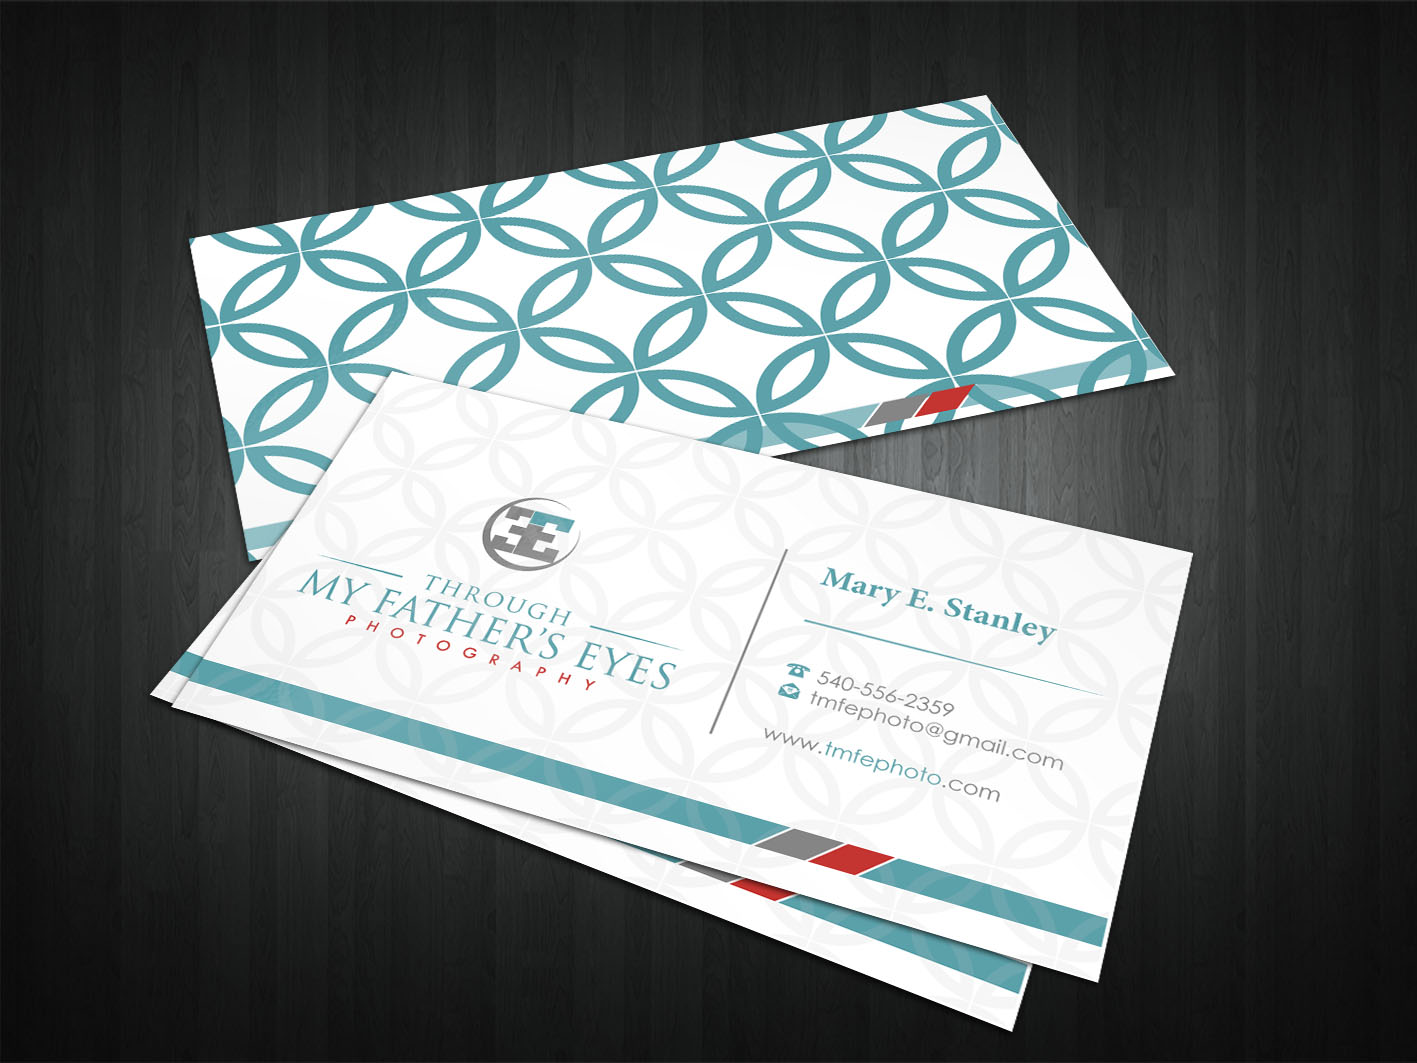 Letterhead, Envelope & Biz Card for TMFE Photography - Photography